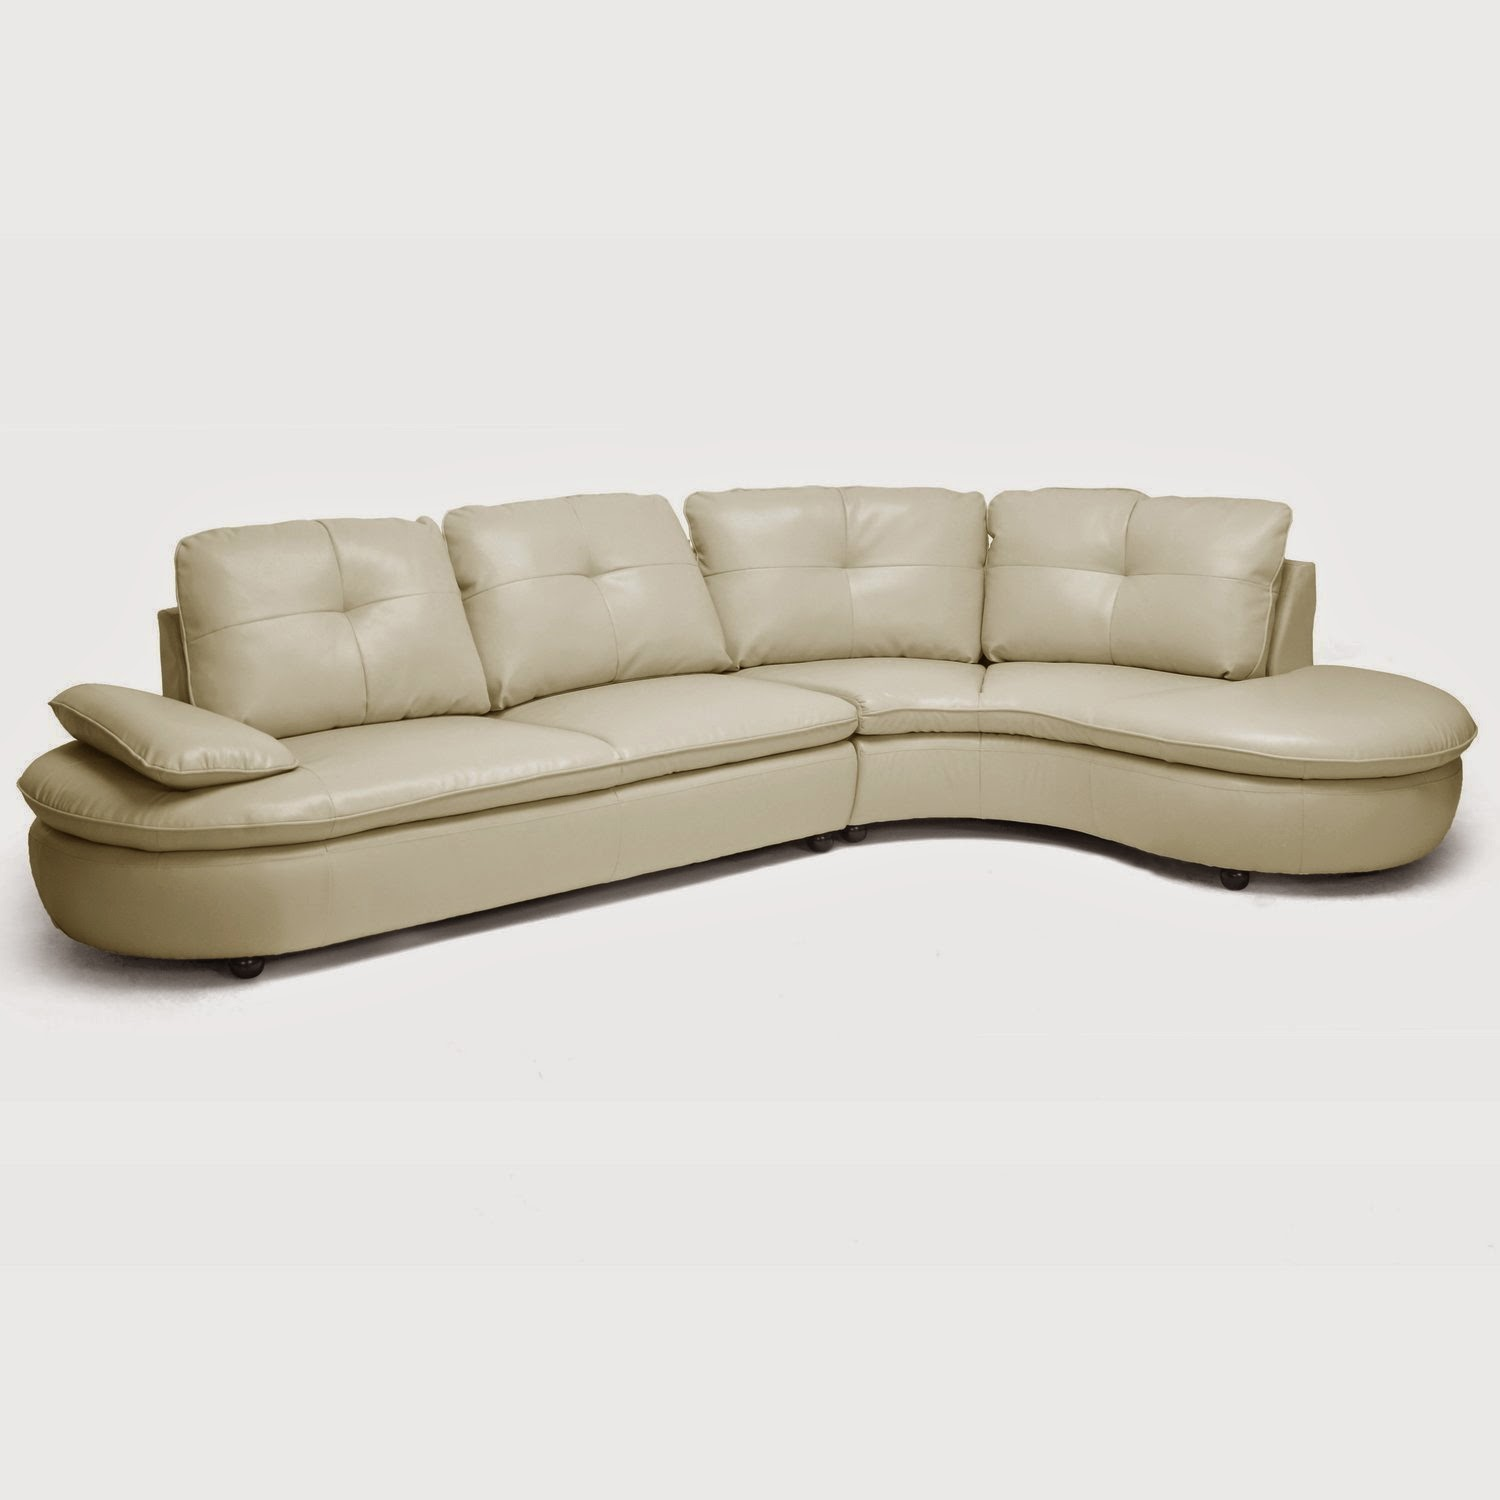 Curved Sofa Sectional Leather: Curved Sofa Couch For Sale: Sofa Curved Front